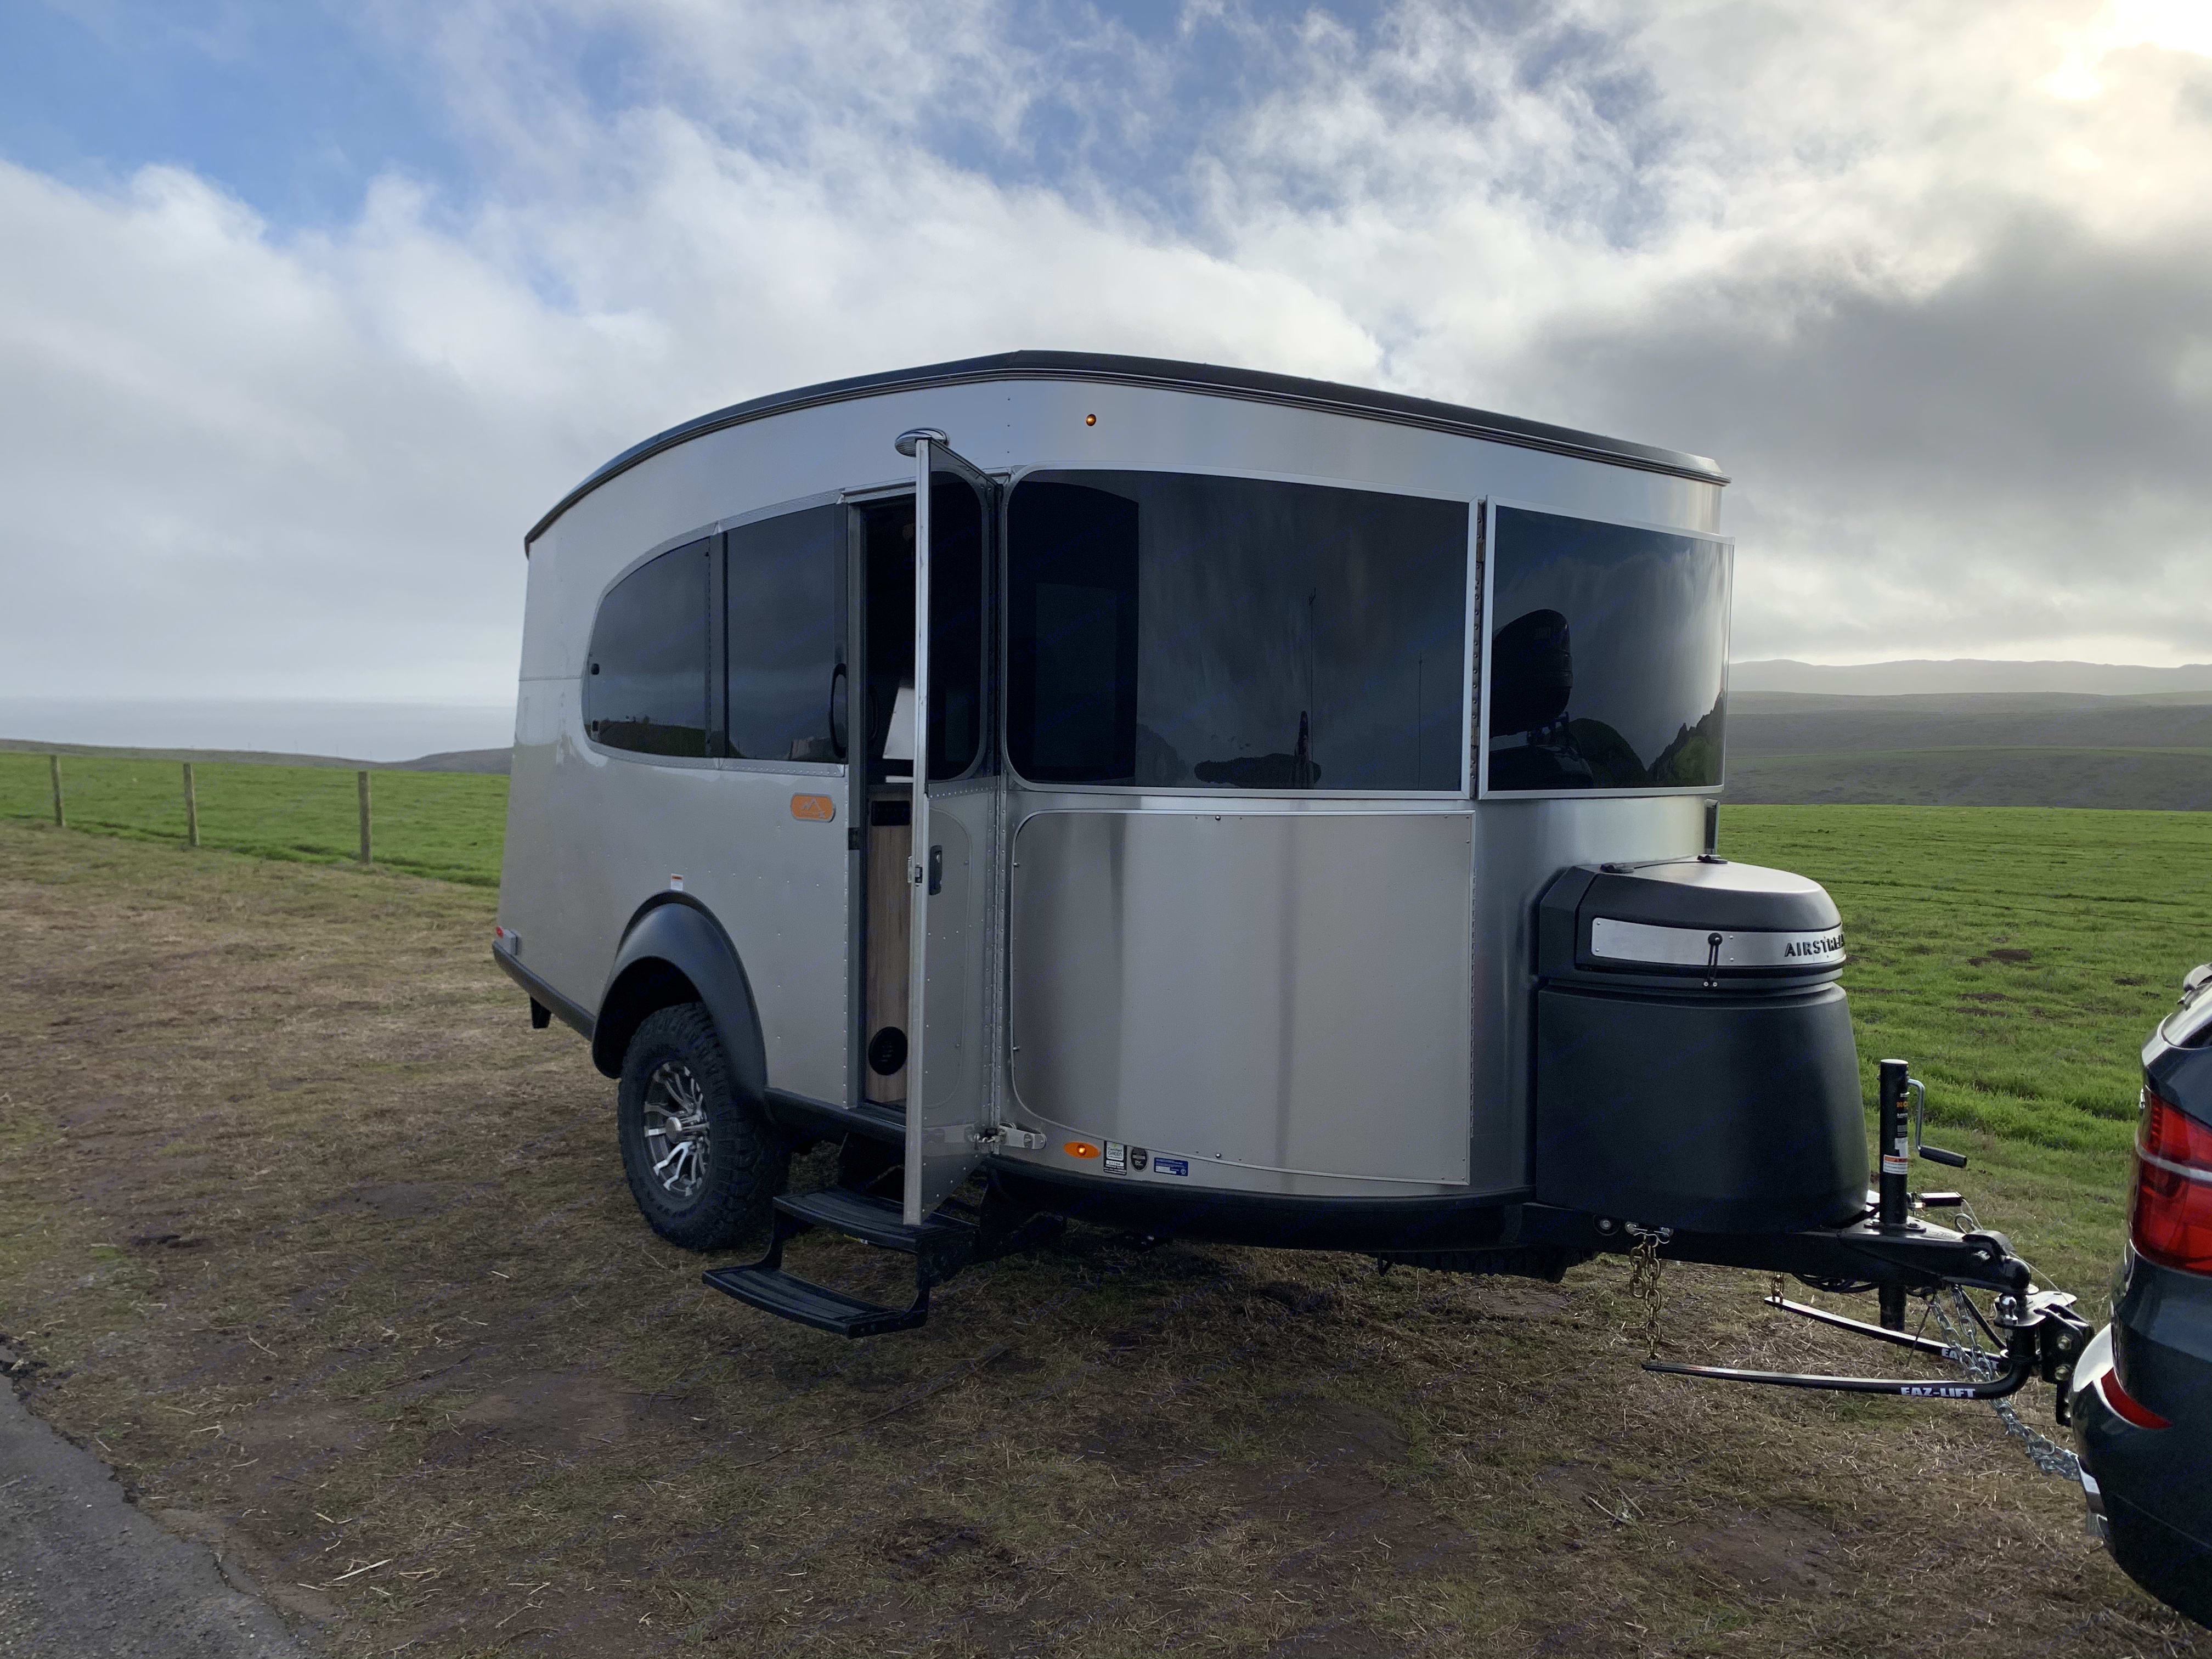 Main entrance on the curbside with 2 20lb propane tanks in the front.. Airstream Basecamp 20X 2021